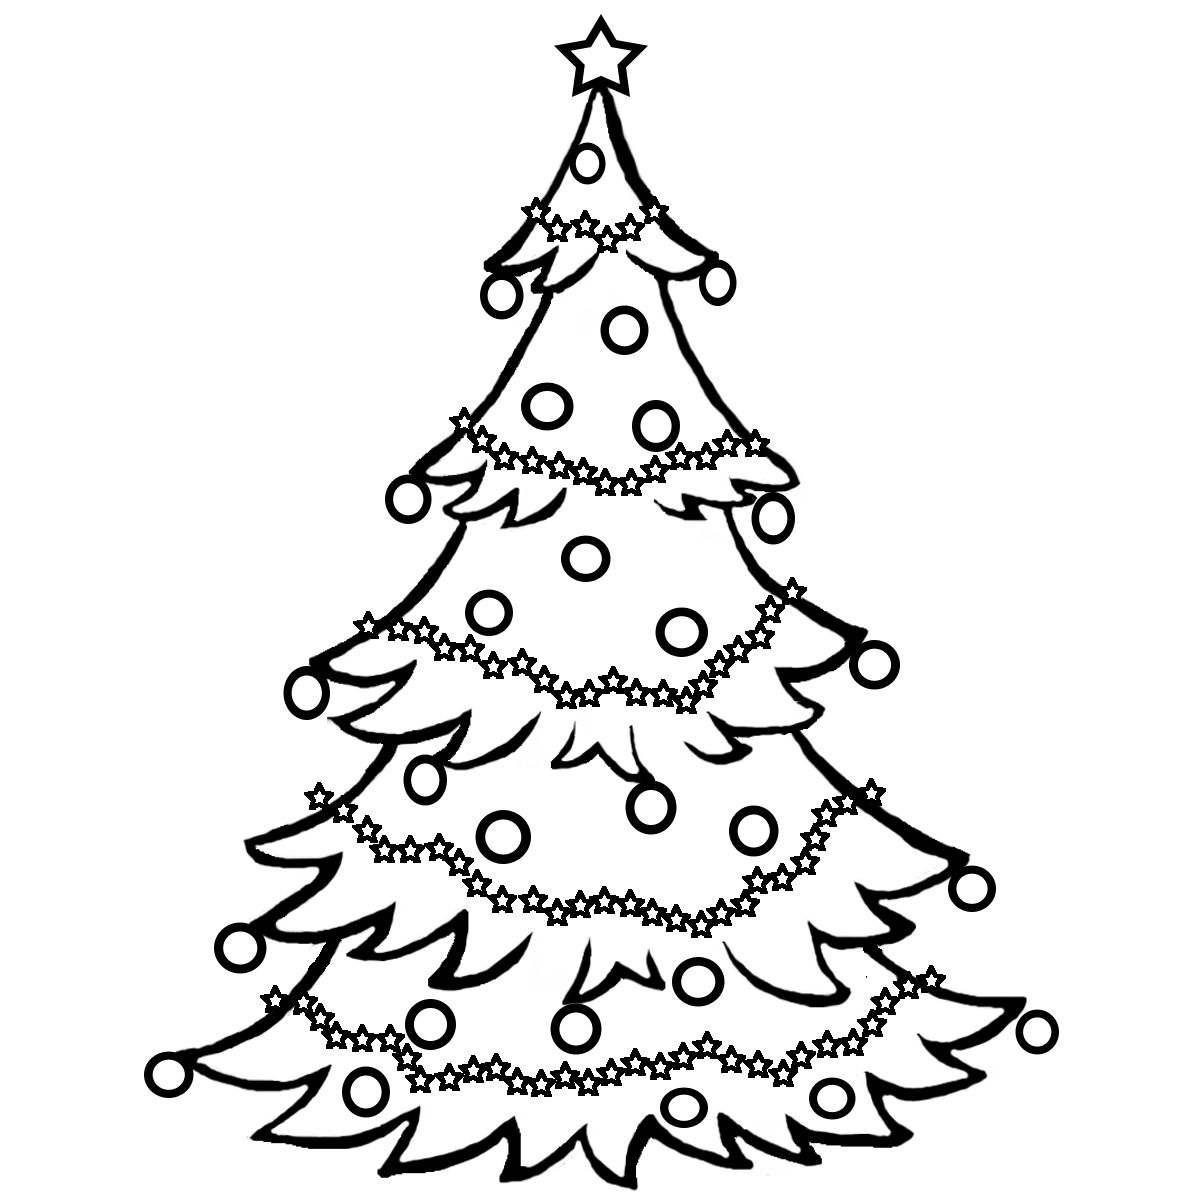 Christmas Coloring Pages Christmas Clip Art Clip Art For Teachers Parents Stud Christmas Tree Coloring Page Christmas Tree Drawing Christmas Tree Clipart